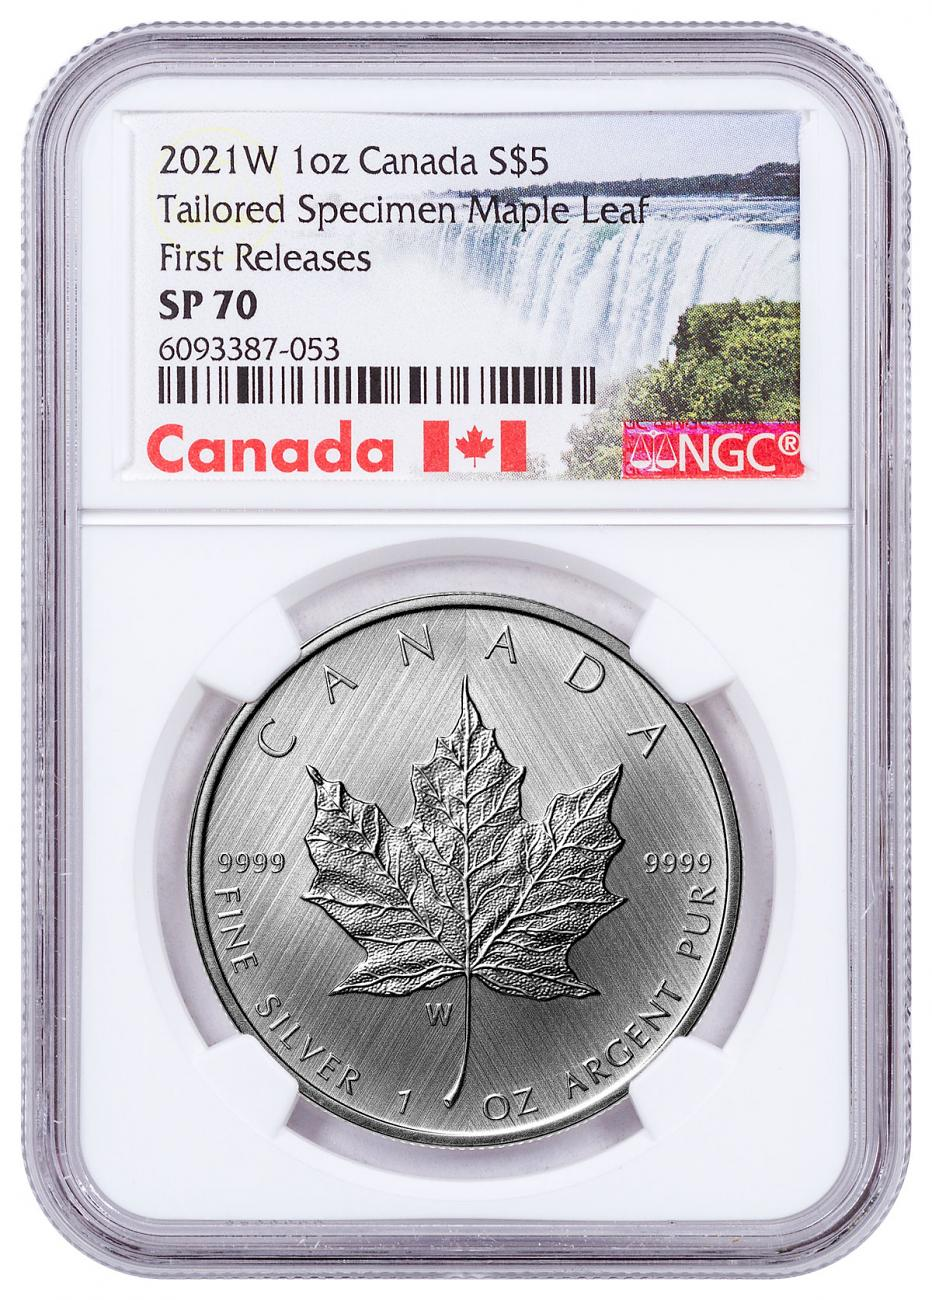 2021-W Canada 1 oz Silver Maple Leaf - Tailored Specimen $5 Coin NGC SP70 FR With Mint COA Exclusive Canada Label